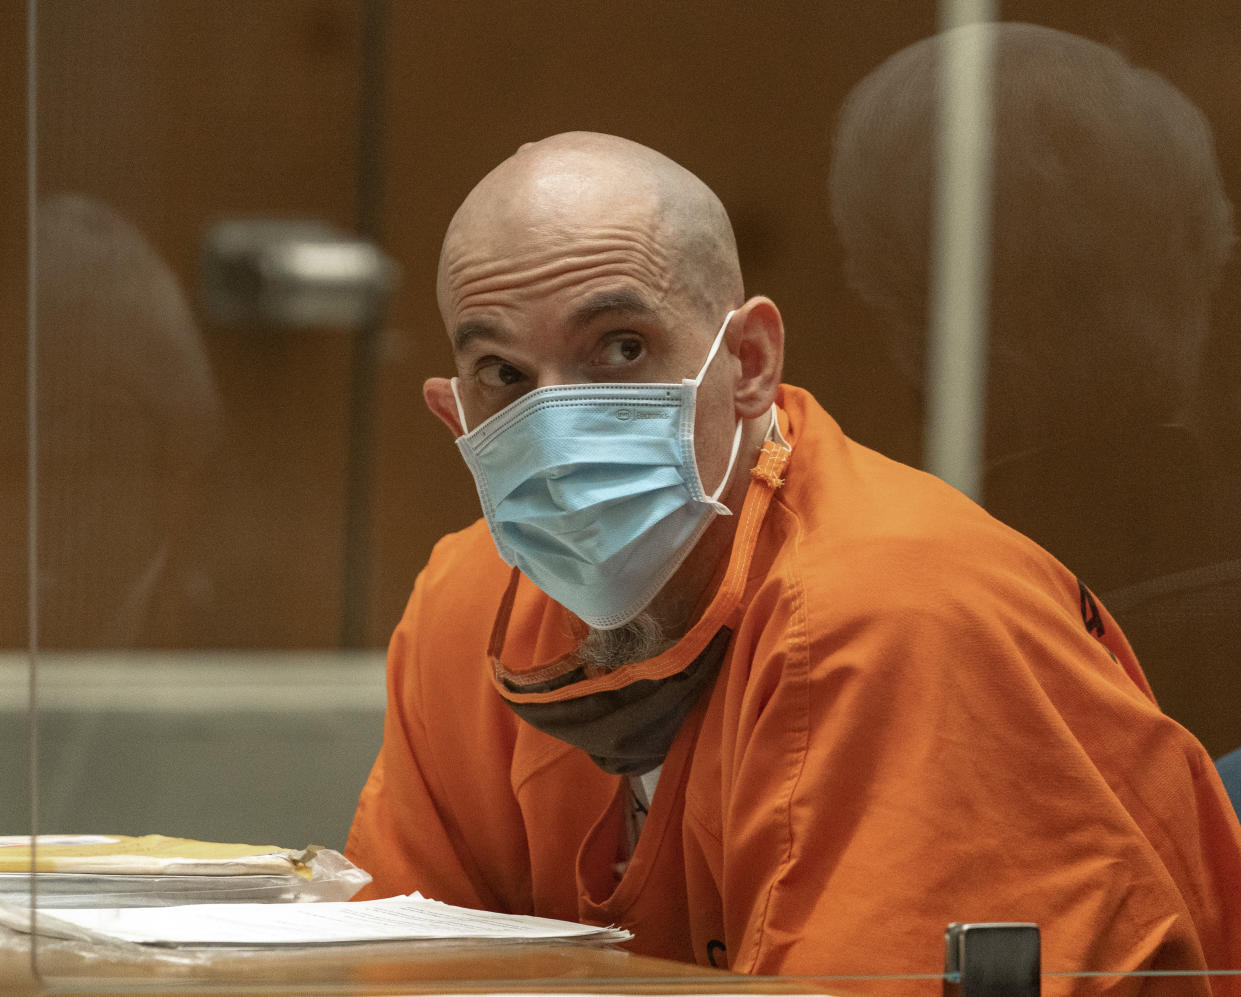 """Michael Thomas Gargiulo listens to his defense attorney Daniel Nardoni, as he pleads for his life during a sentencing hearing at Los Angeles Superior Court, Friday, July 16, 2021. A judge denied a new trial for Garigiulo, a man prosecutors called """"The Boy Next Door Killer,"""" who could be sentenced to death later Friday for the home-invasion murders of two women and the attempted murder of a third.   (AP Photo/Damian Dovarganes)"""